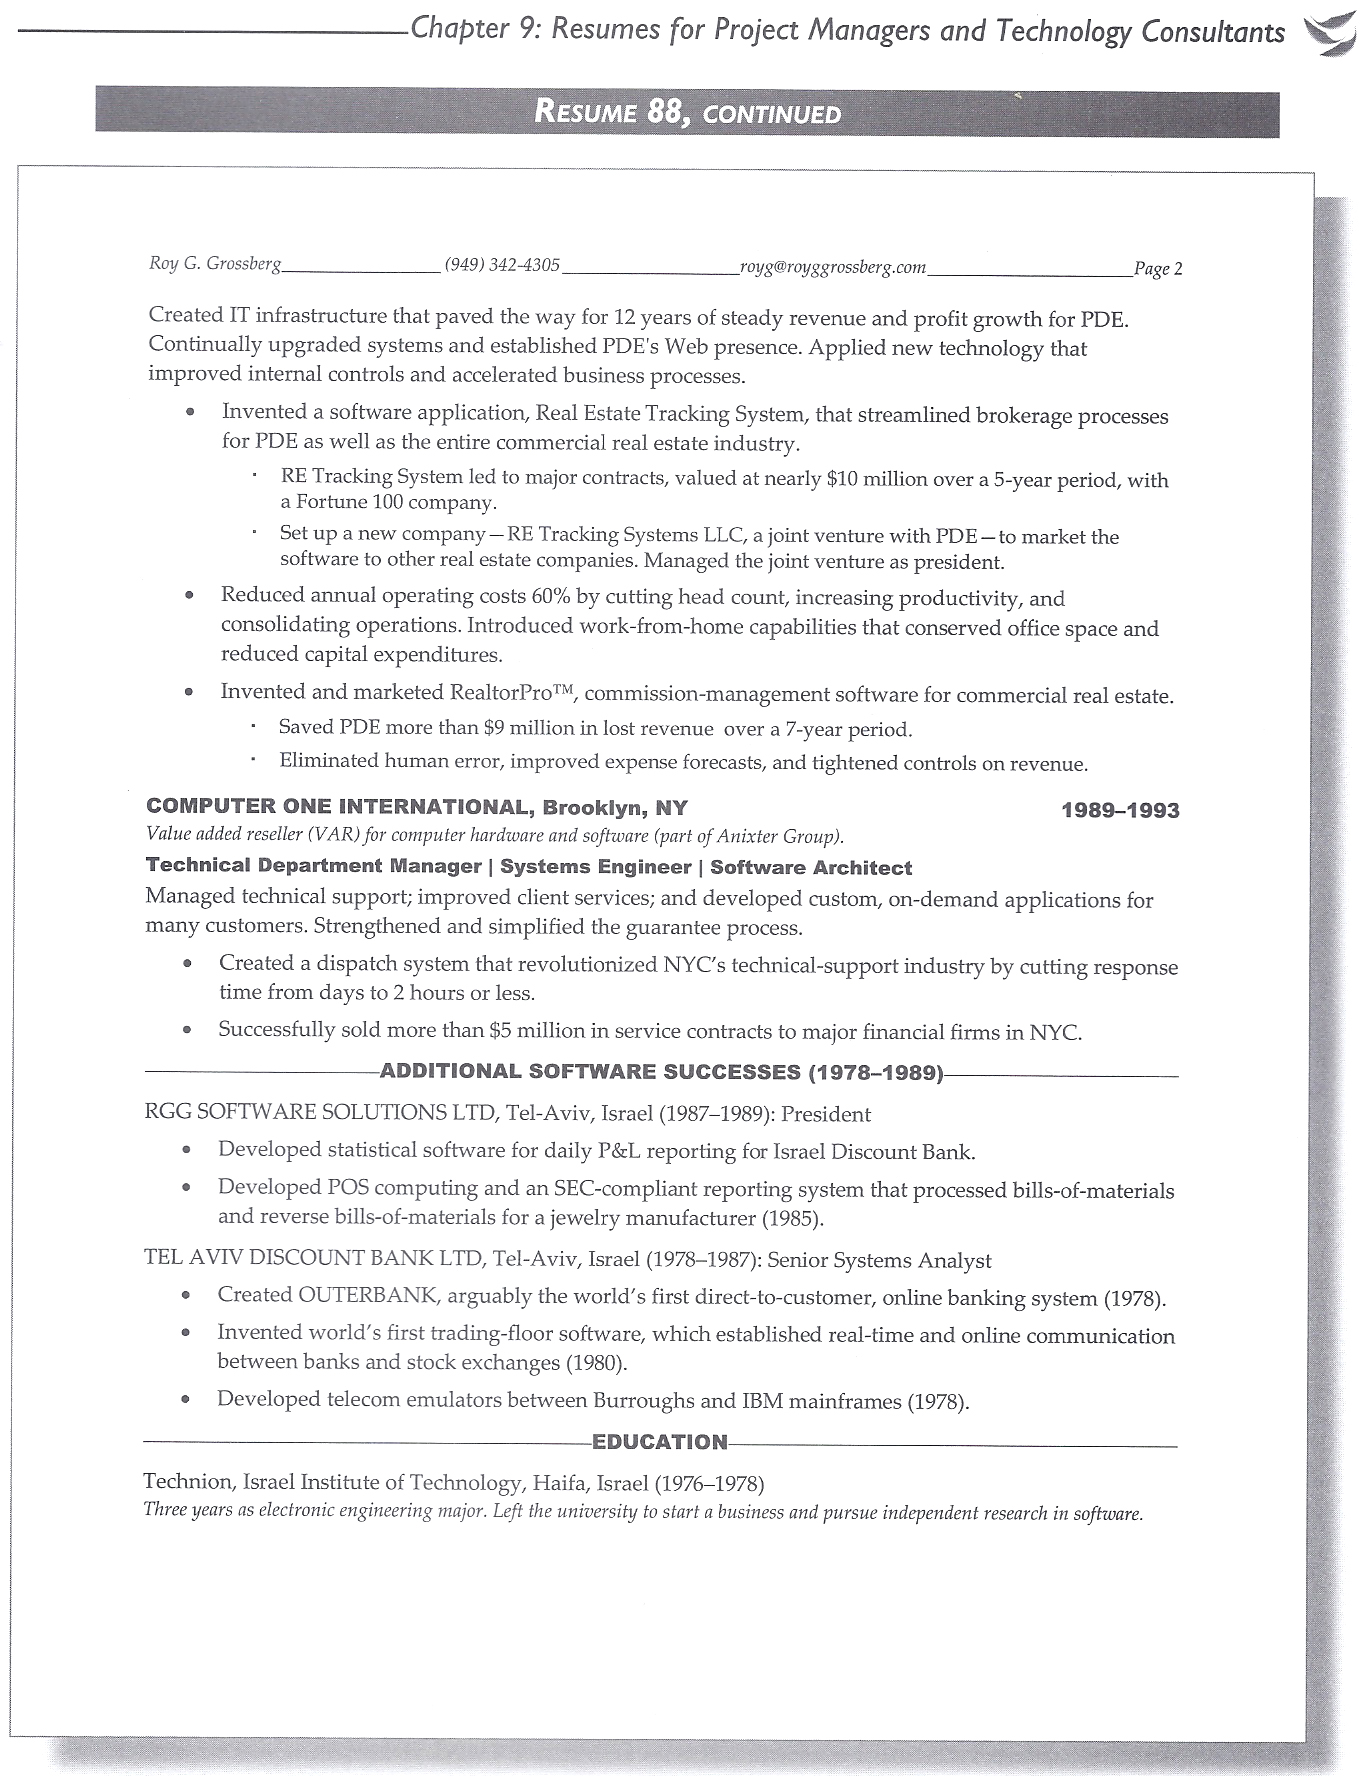 computer hardware and networking resume format business receipt